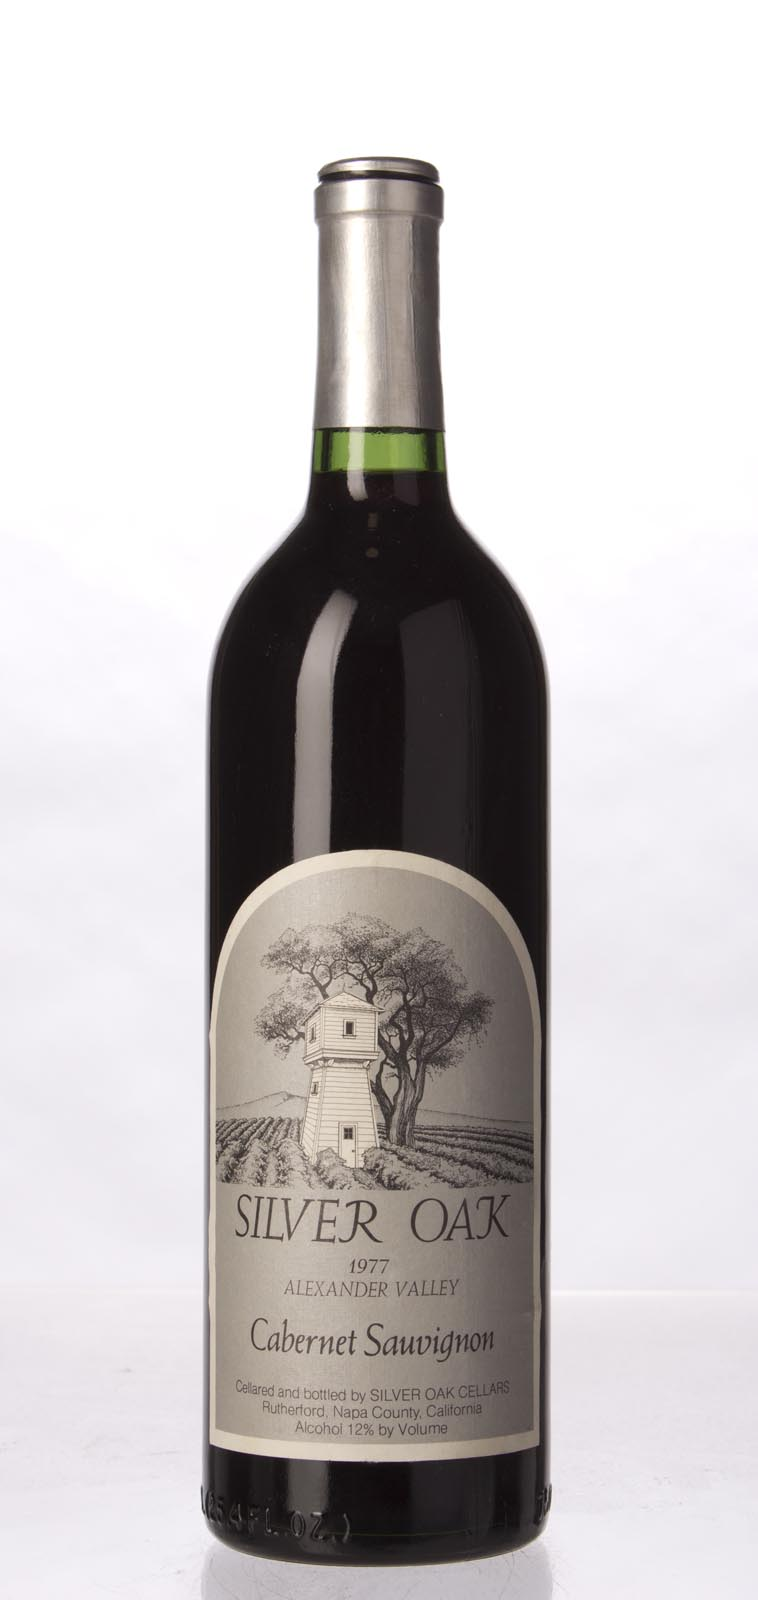 Silver Oak Cabernet Sauvignon Alexander Valley 1977, 750mL () from The BPW - Merchants of rare and fine wines.